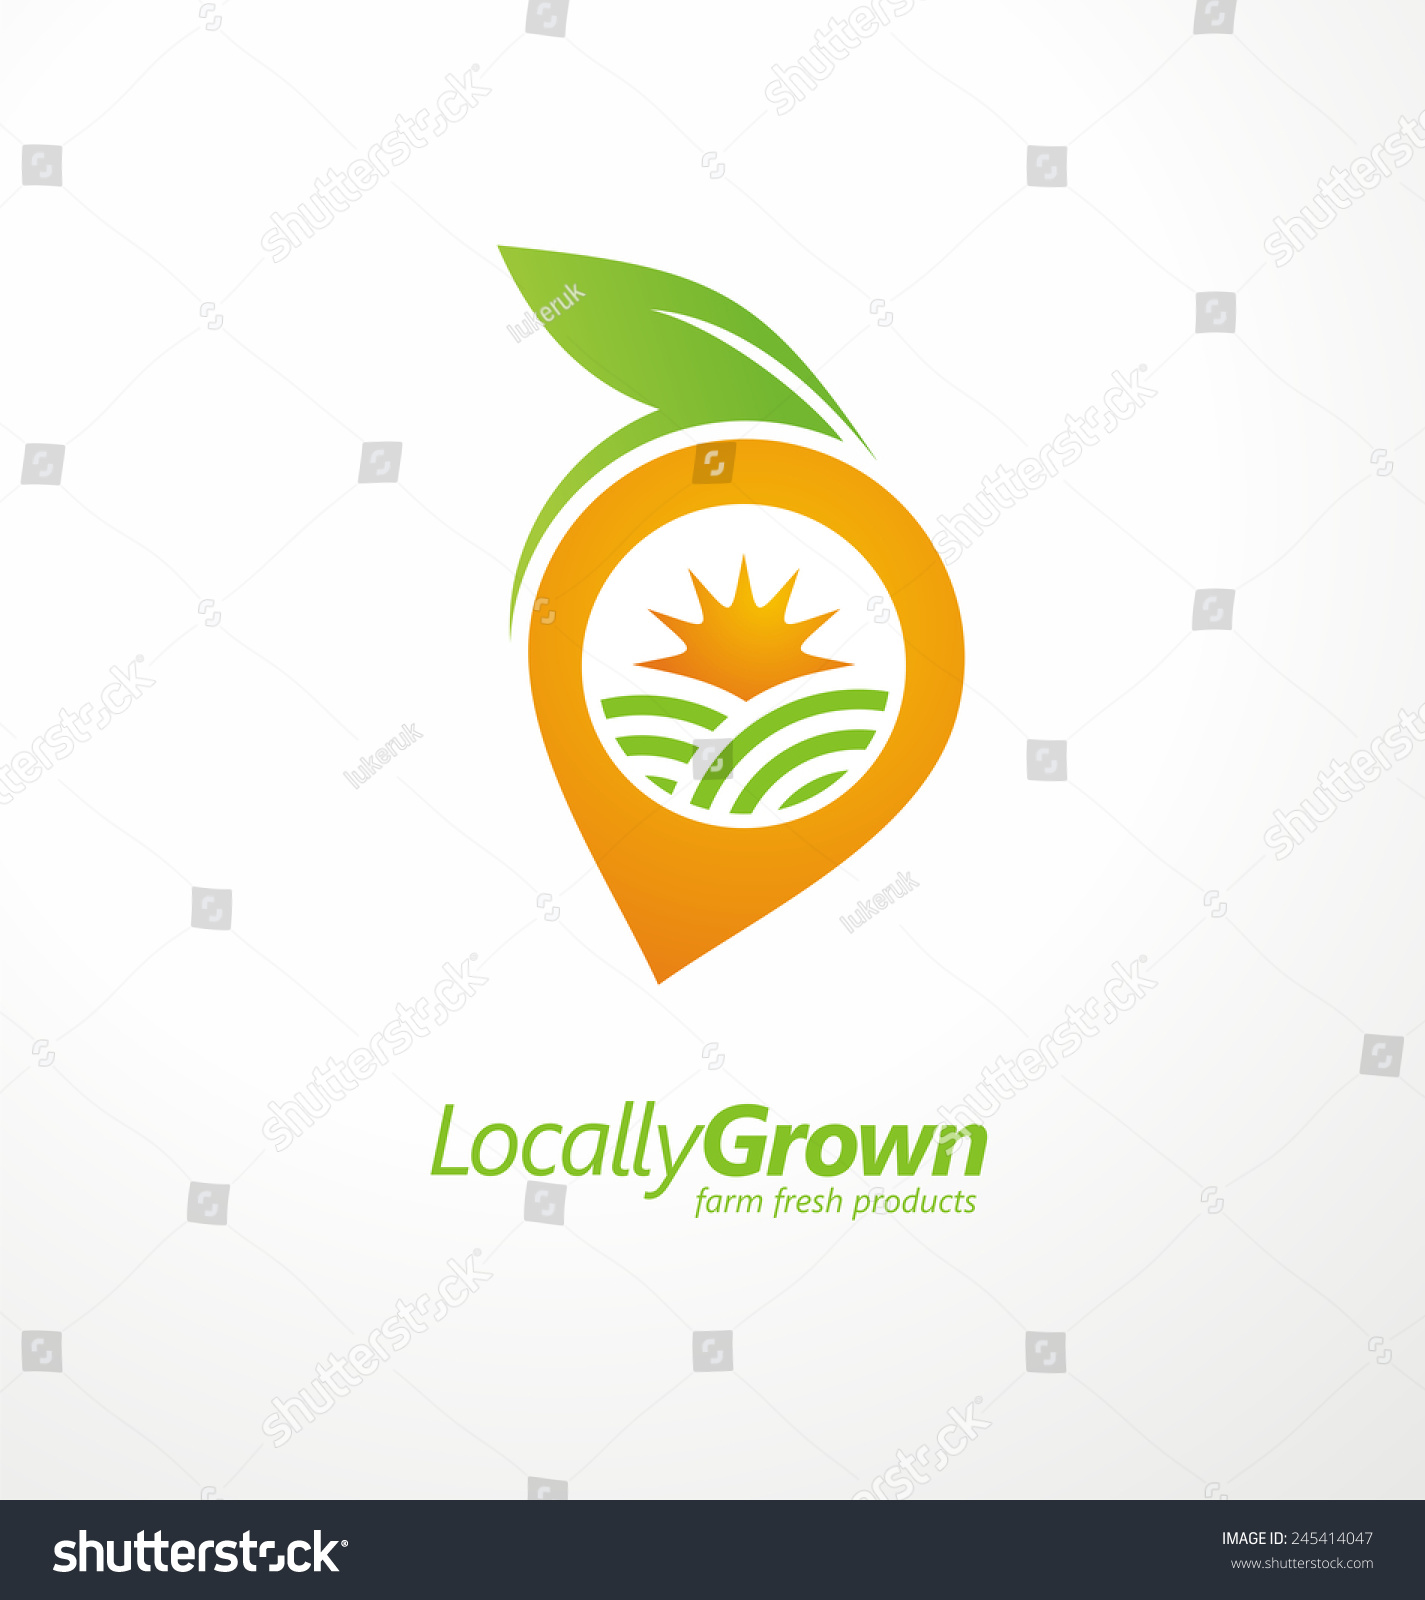 Locally Grown Food From Local Farmers Vector Label ...